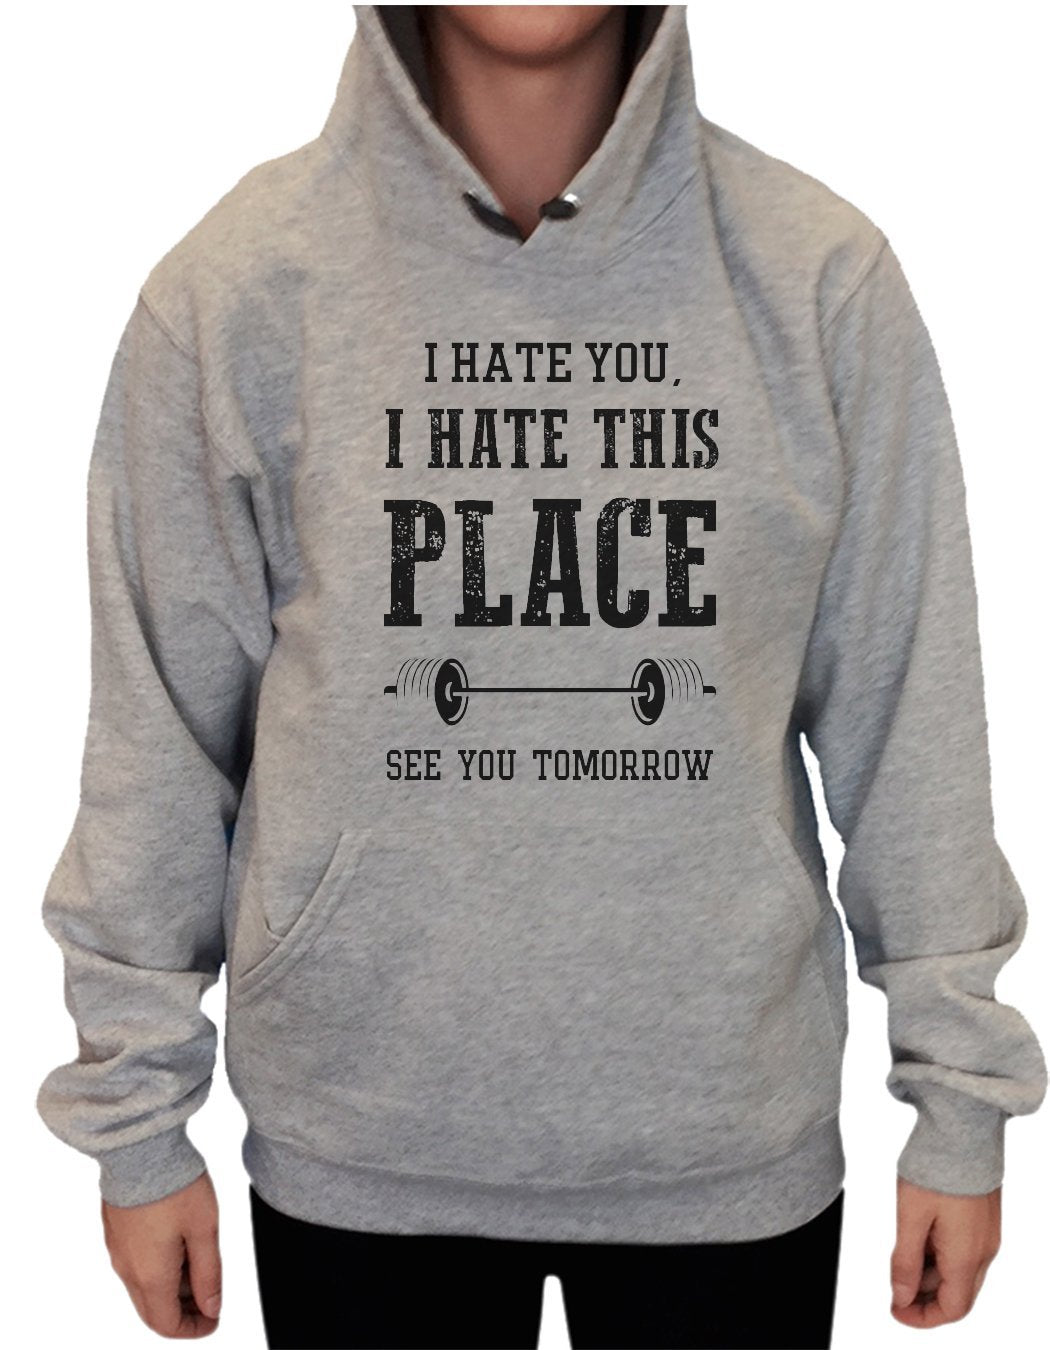 UNISEX HOODIE - I hate you, I hate this place See you tomorrow - FUNNY MENS AND WOMENS HOODED SWEATSHIRTS - 857 Funny Shirt